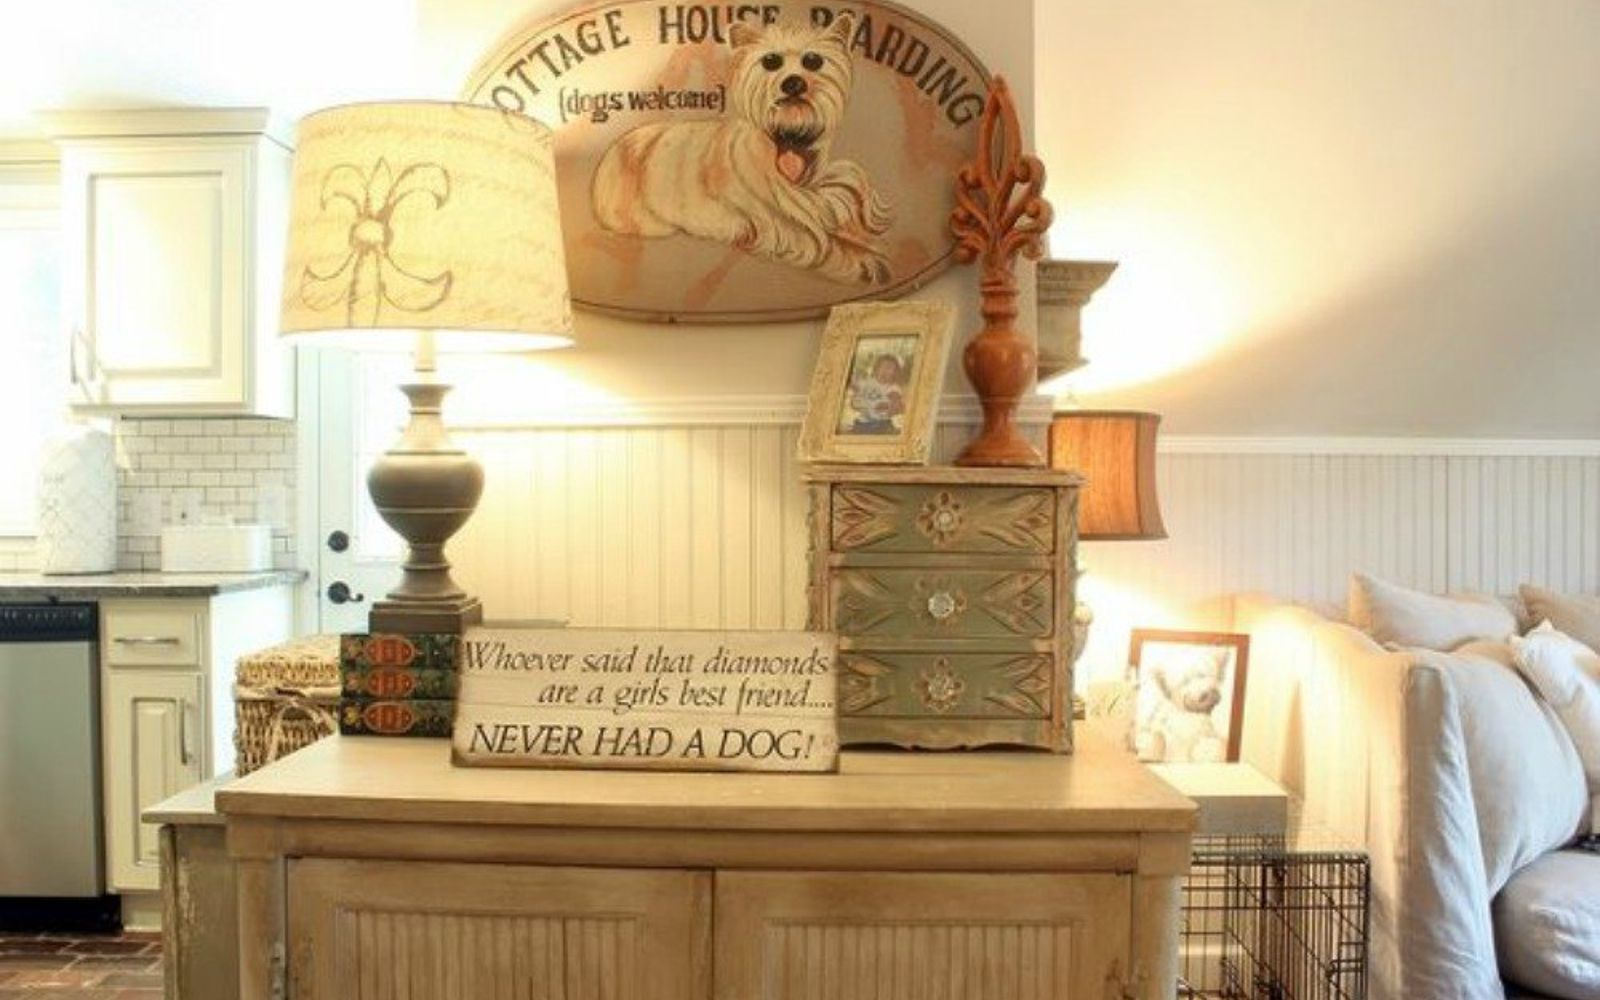 s why everyone is freaking out over these country cottage rooms, bedroom ideas, entertainment rec rooms, home decor, This french decor completes the den